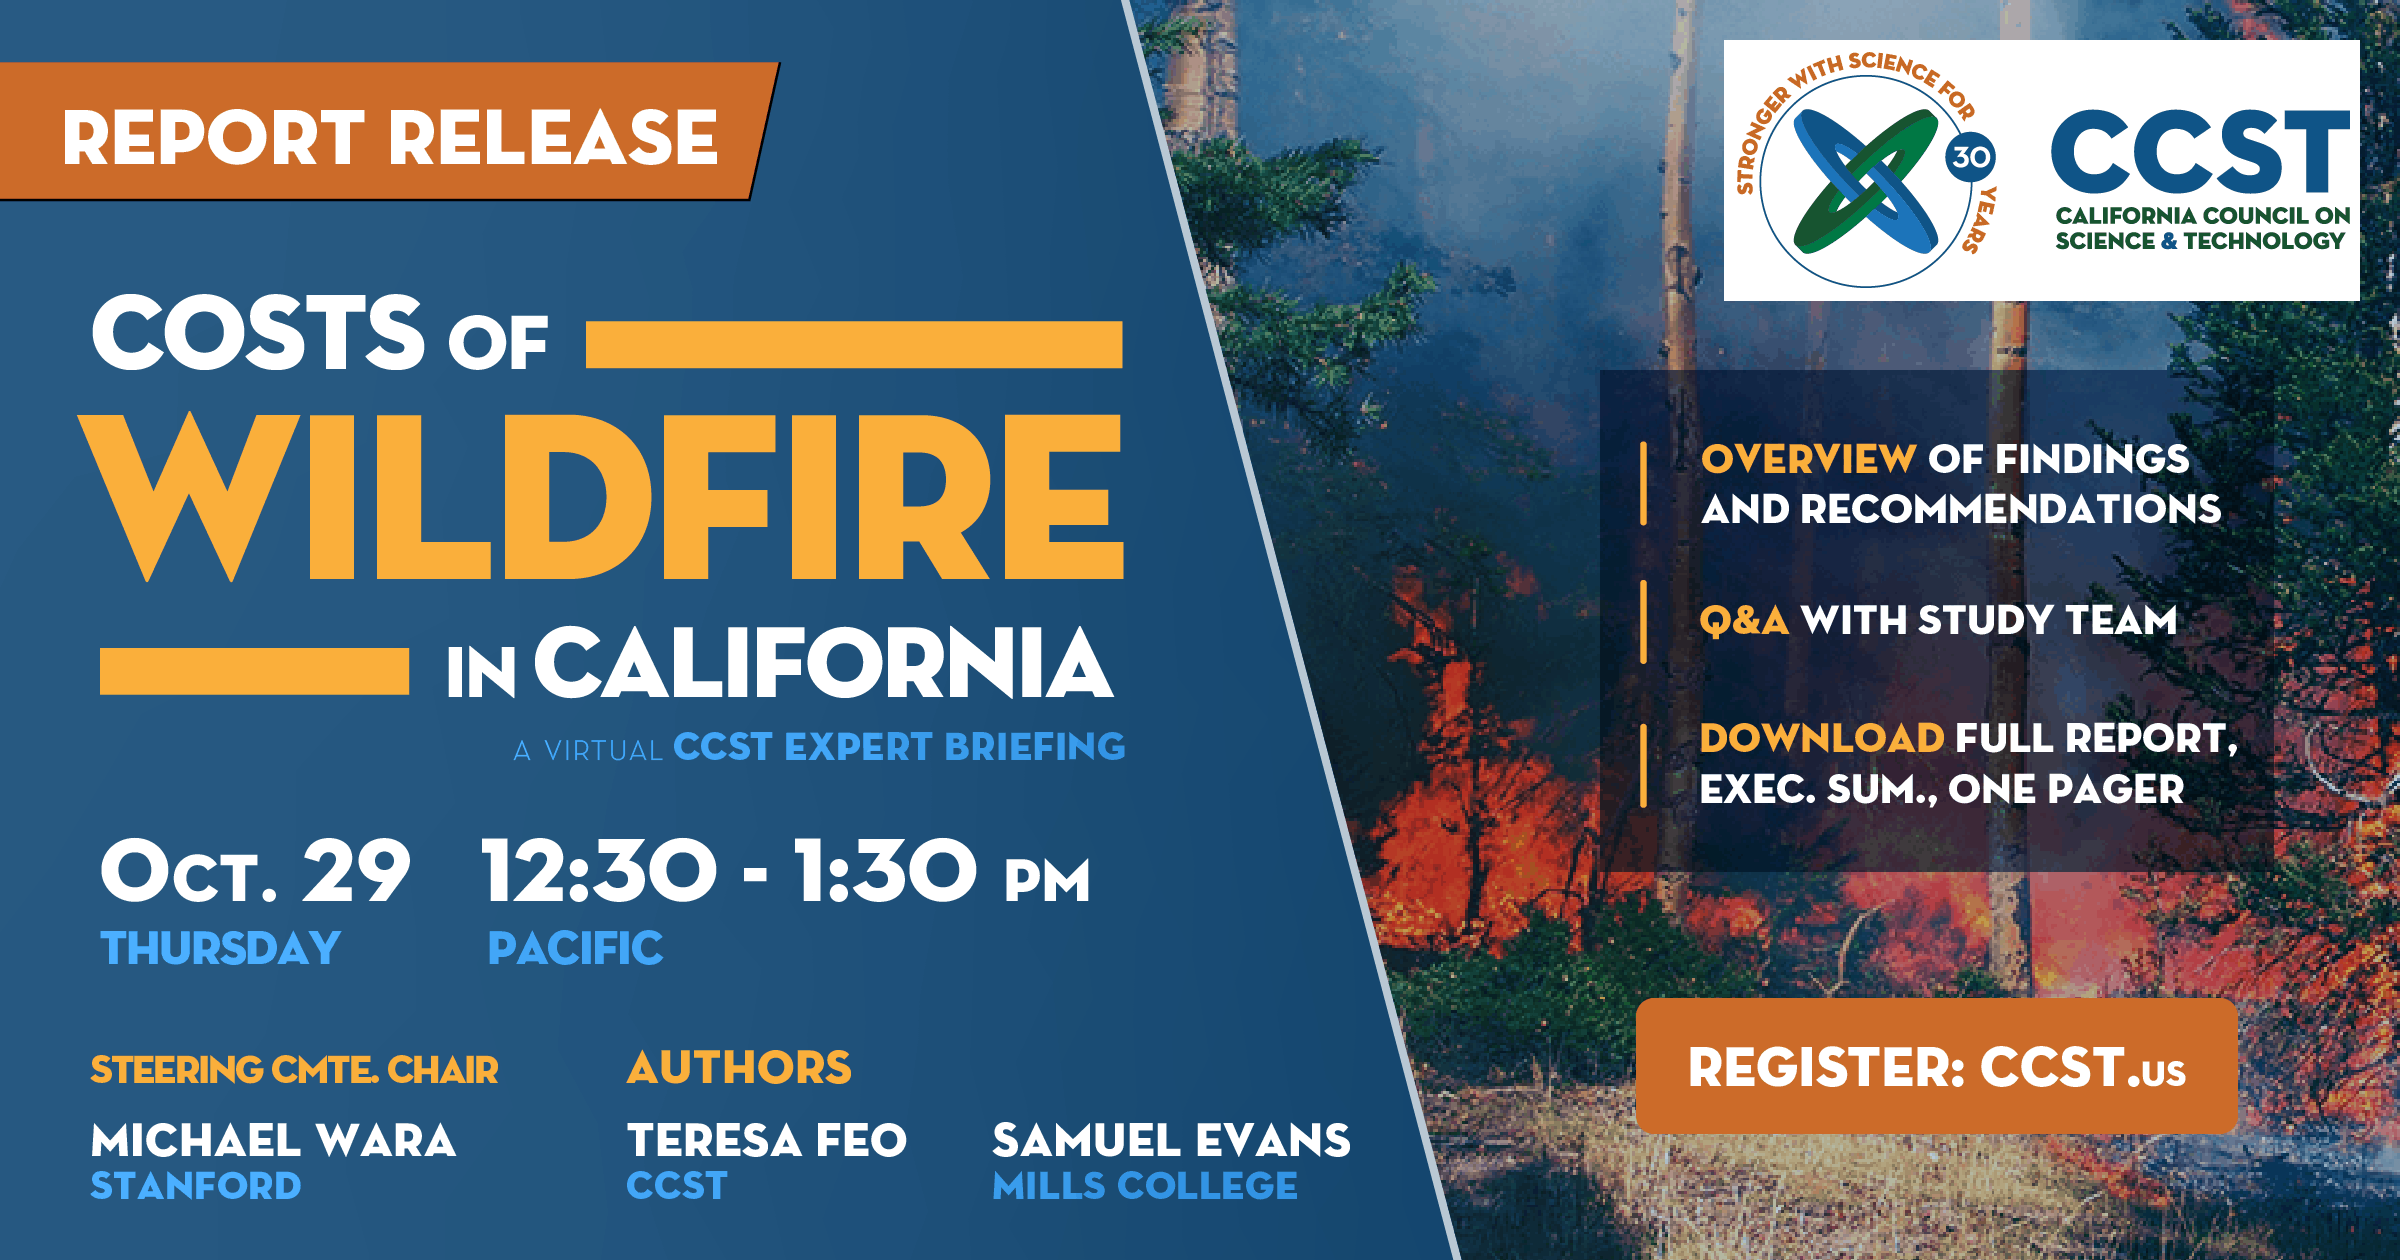 Costs of Wildfire in California, Report Release, Oct 29, 12:30pm